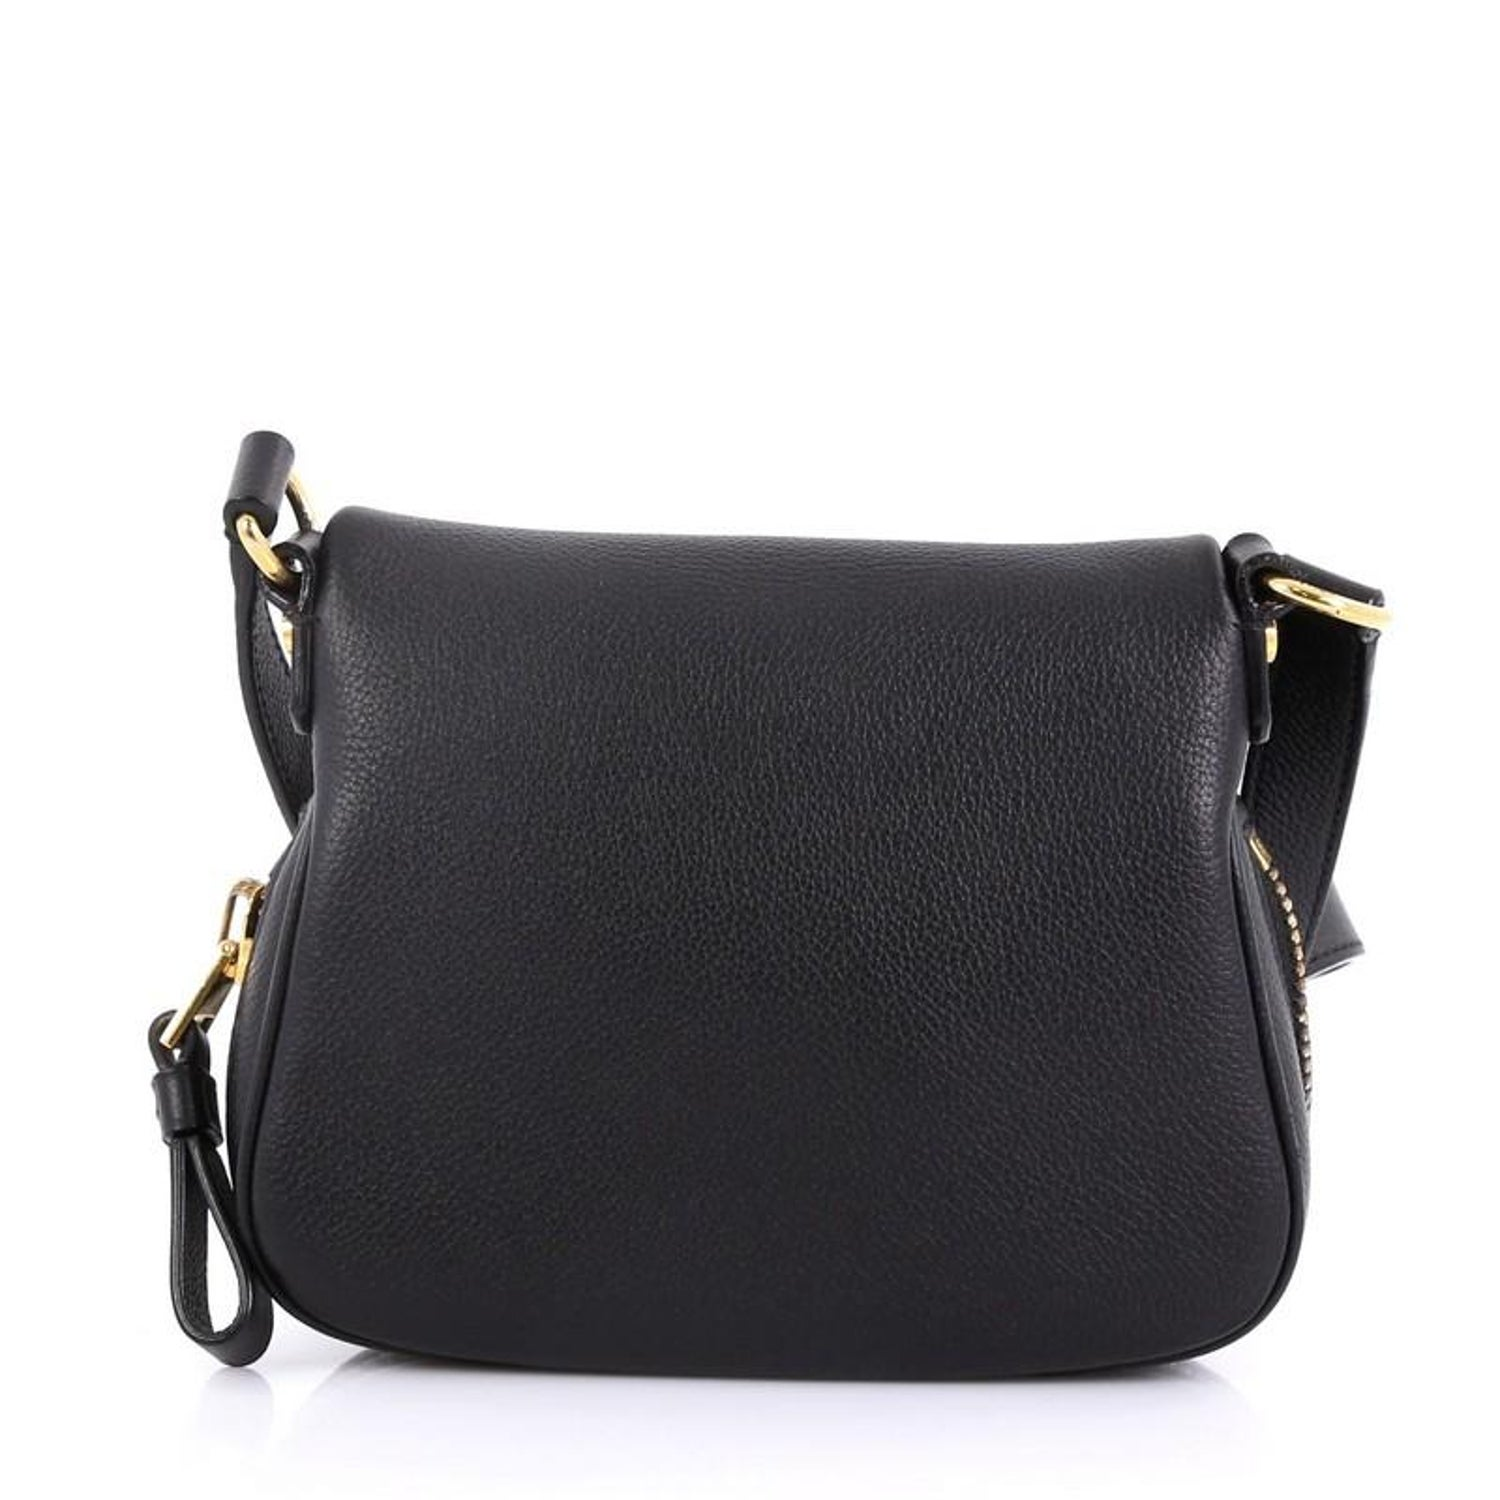 27a8adc05c913 Tom Ford Jennifer Crossbody Bag Leather Mini at 1stdibs